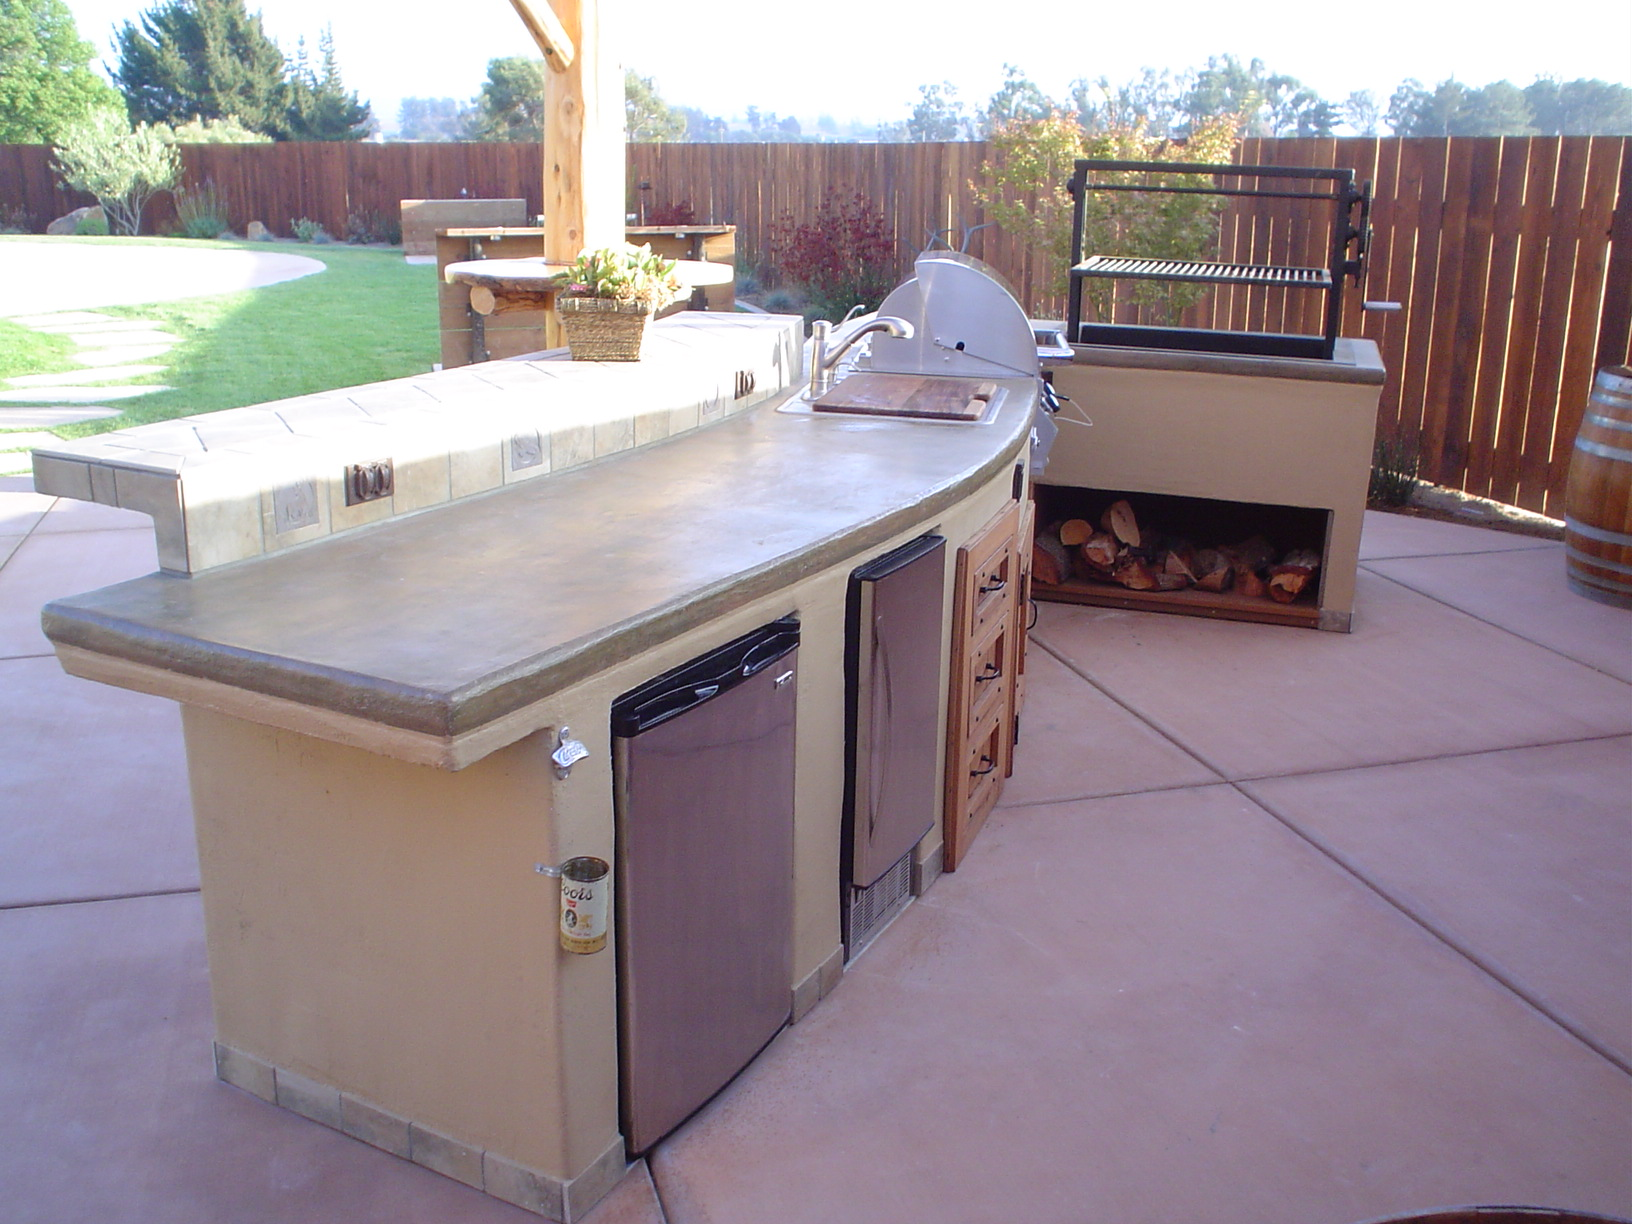 15 Outdoor Kitchen W Custom Log Arbor This Island Features Concrete Counter Tops With A Lace Stucco Finish